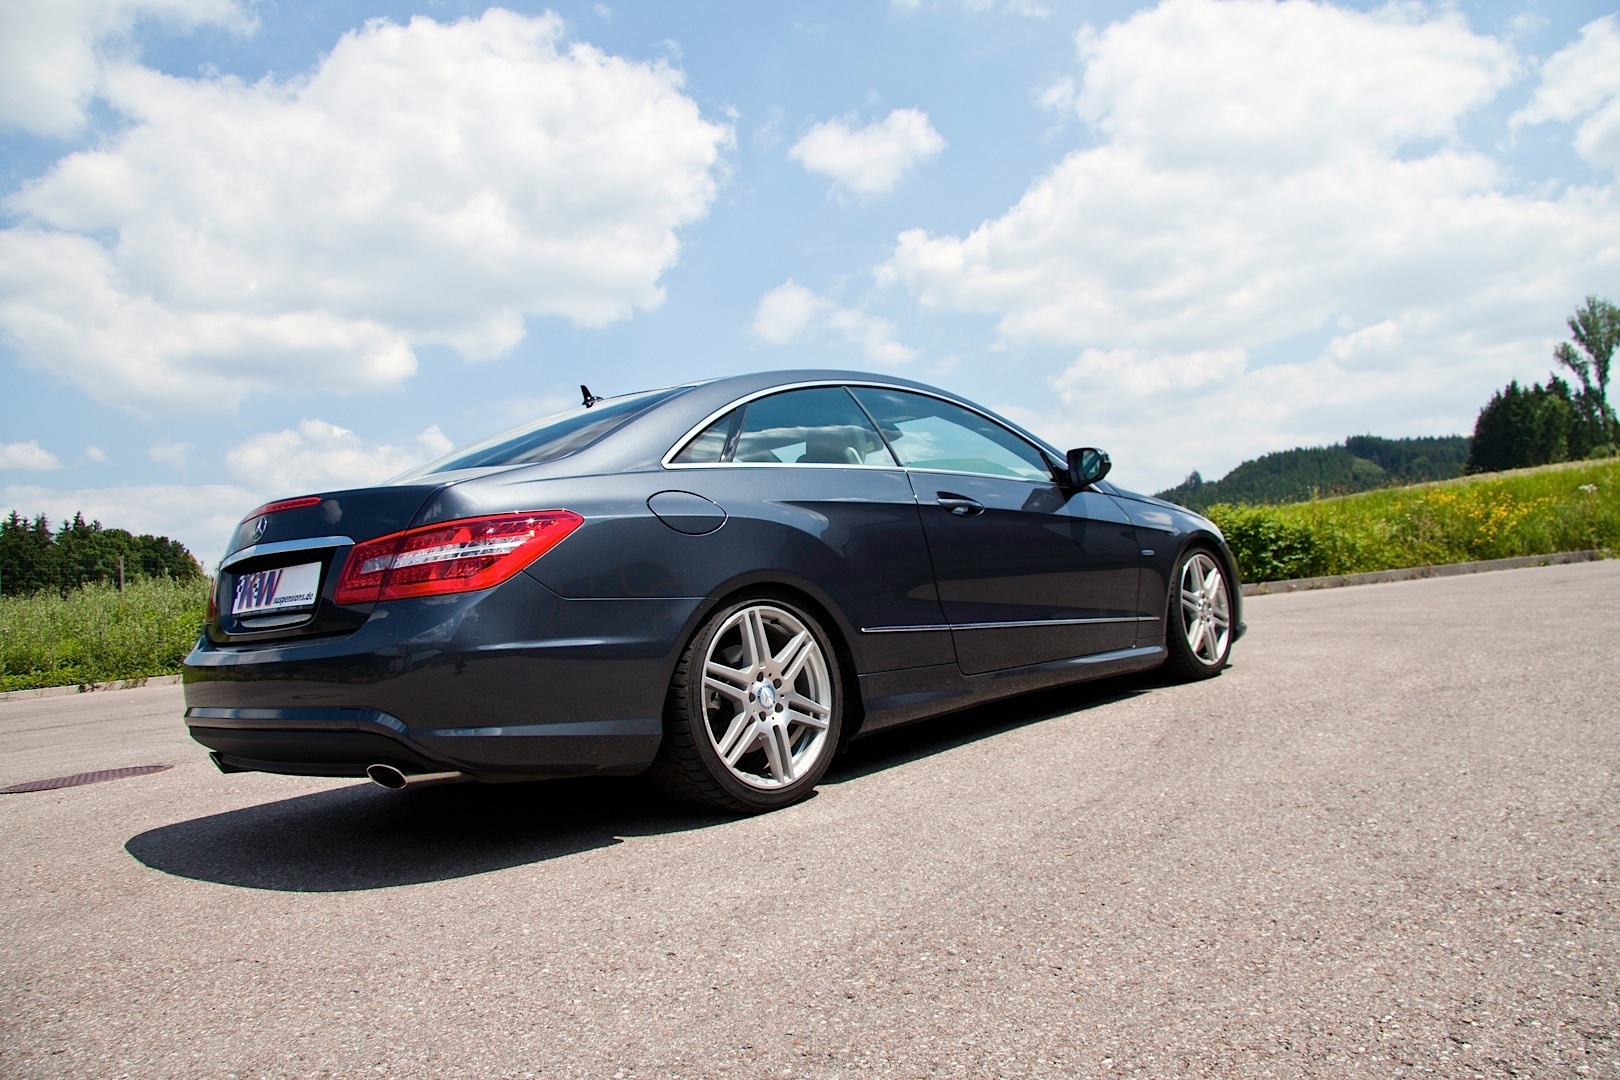 Kw Launches Adaptive Coilover Kit For C Class And E Class Coupe Photo Gallery 73066 on 2013 mercedes benz e55 amg